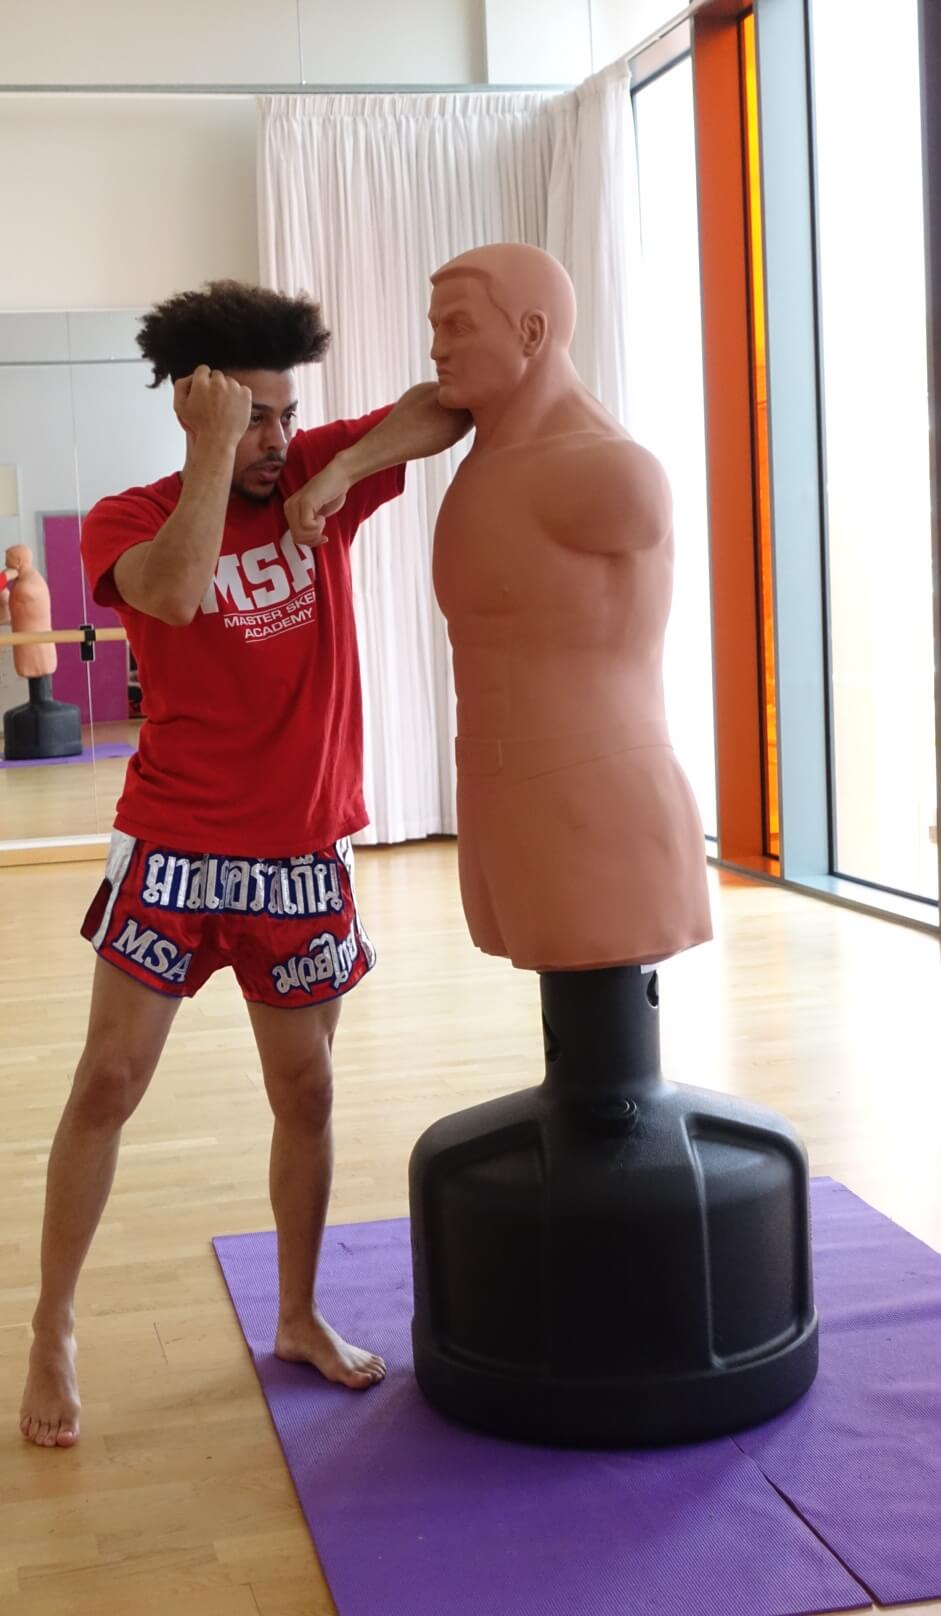 Cameron Practicing Muay Thai